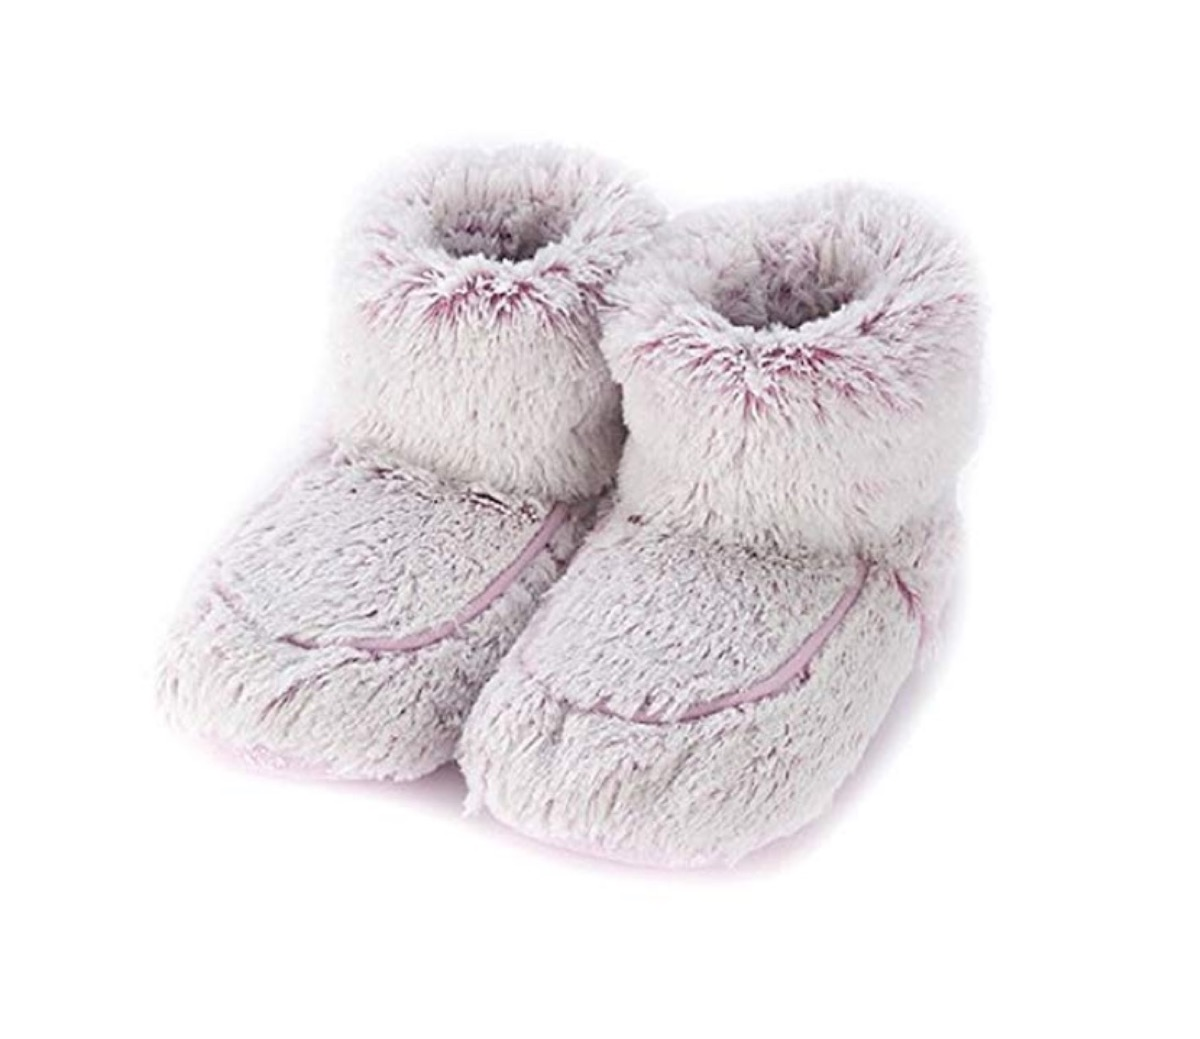 fuzzy purple slippers, relaxation gift